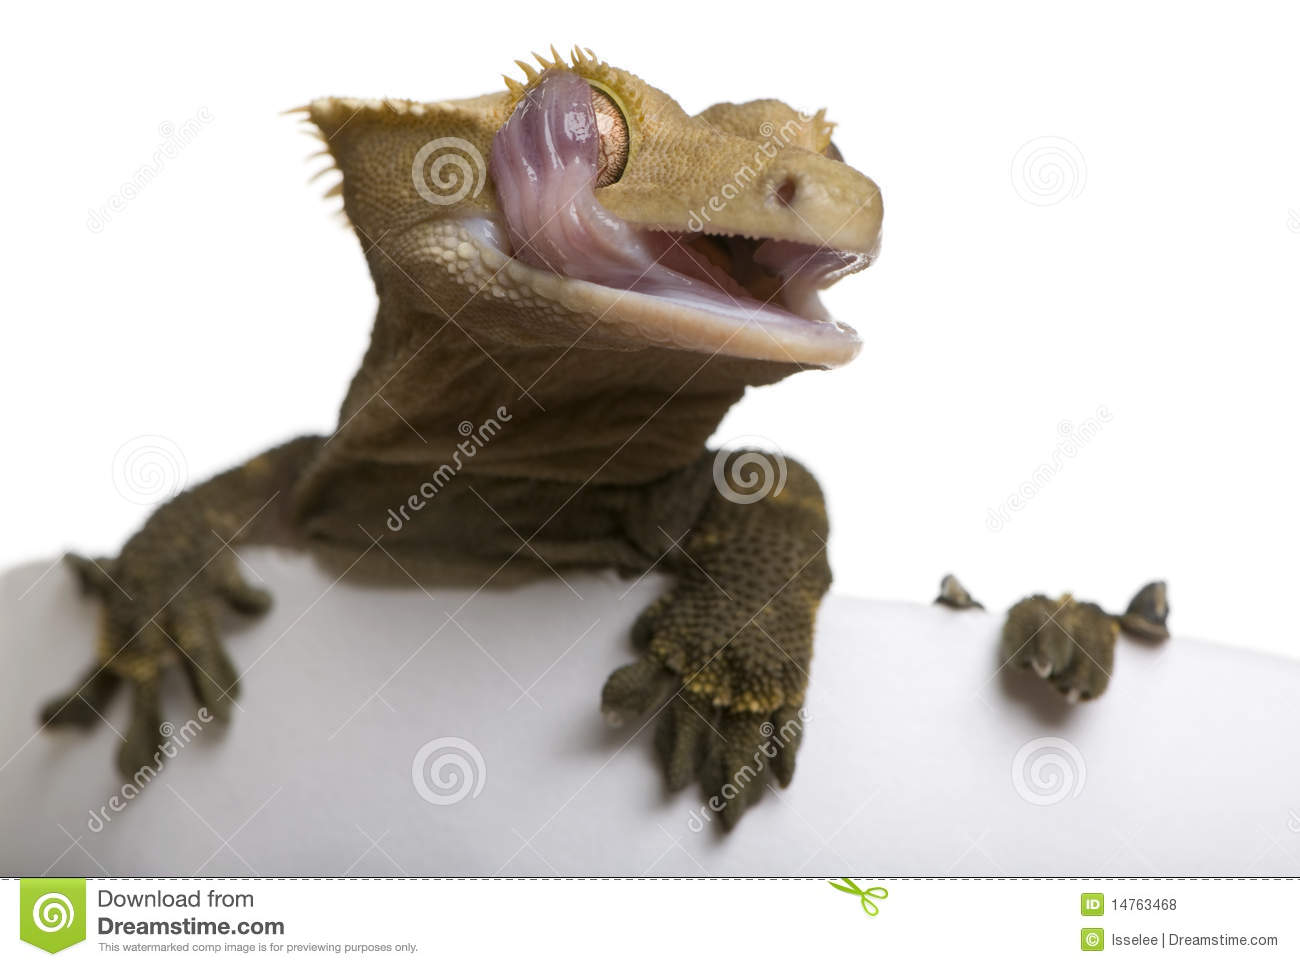 New Caledonian Crested Gecko Licking Eye Royalty Free Stock Photos.